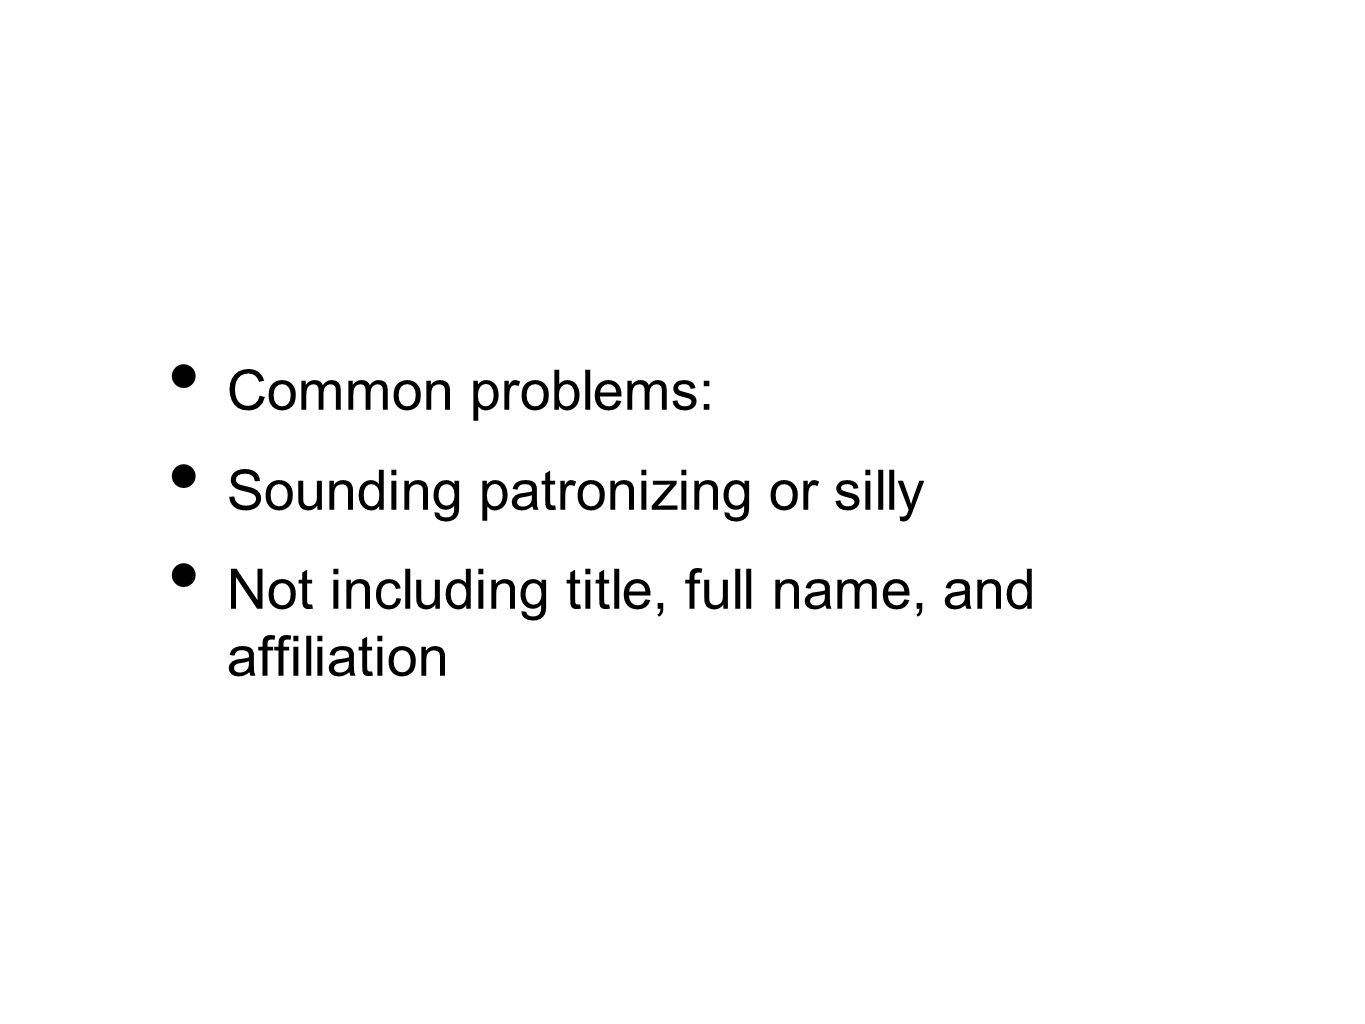 Common problems: Sounding patronizing or silly Not including title, full name, and affiliation